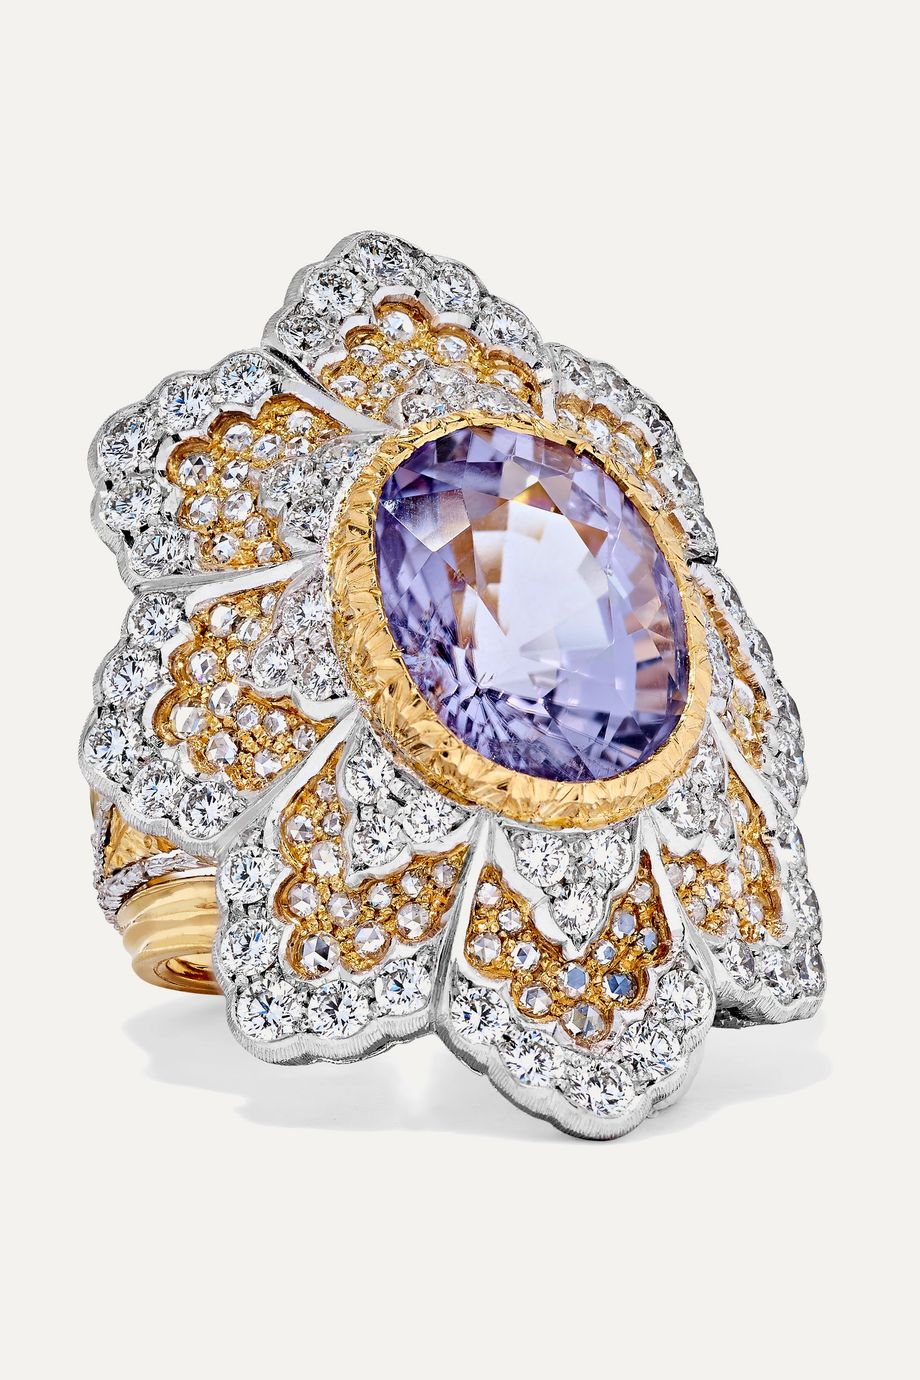 Buccellati 18-karat yellow and white gold diamond and tourmaline ring